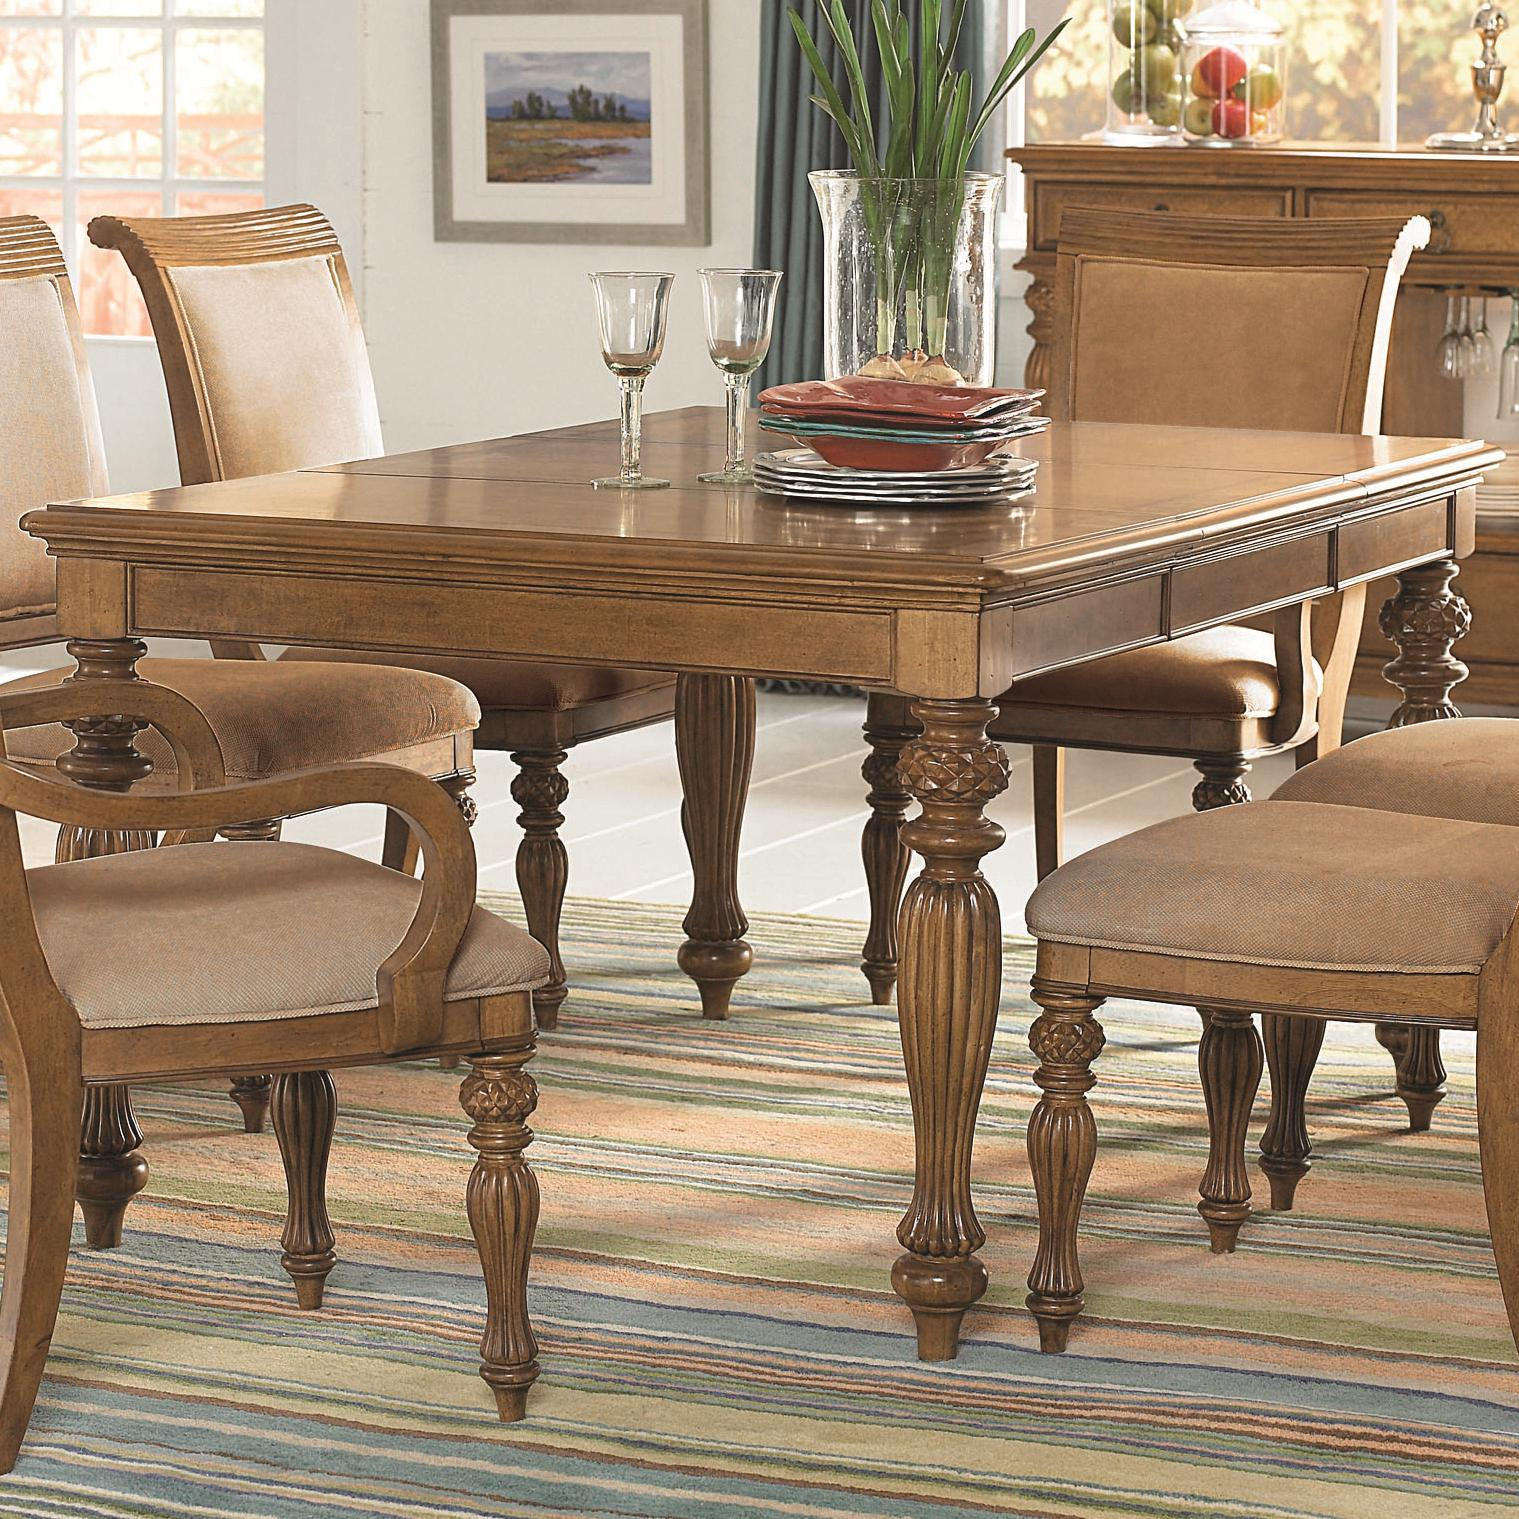 Piece rectangular turned carved leg dining table with